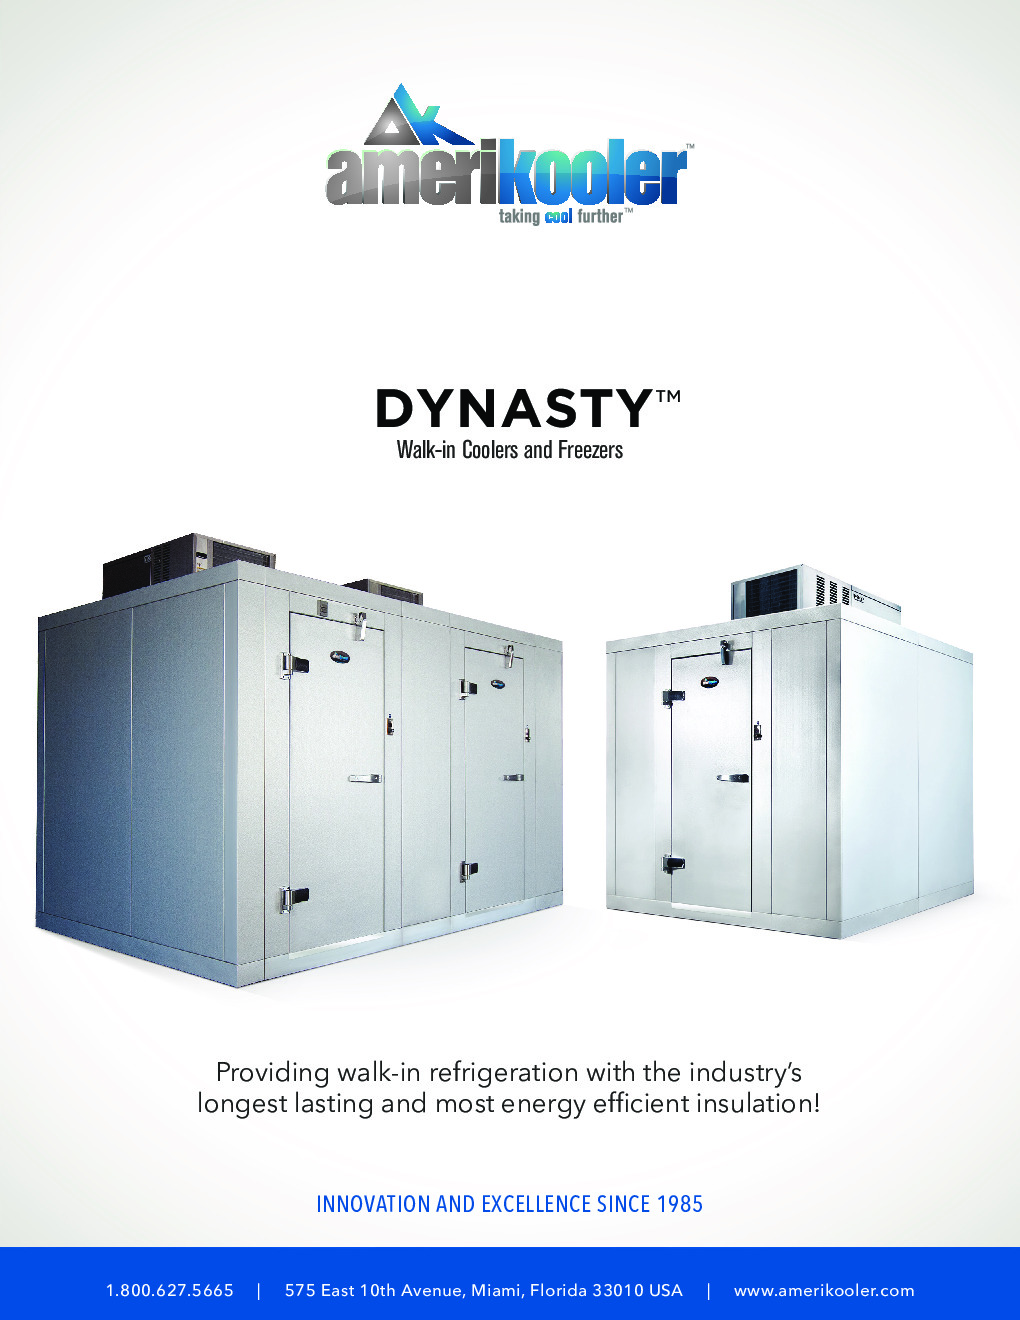 AmeriKooler DW101477N-5/9-RM 10' X 14' Walk-In Cooler, 9' L Cooler without Floor and 5' L Freezer, Remote